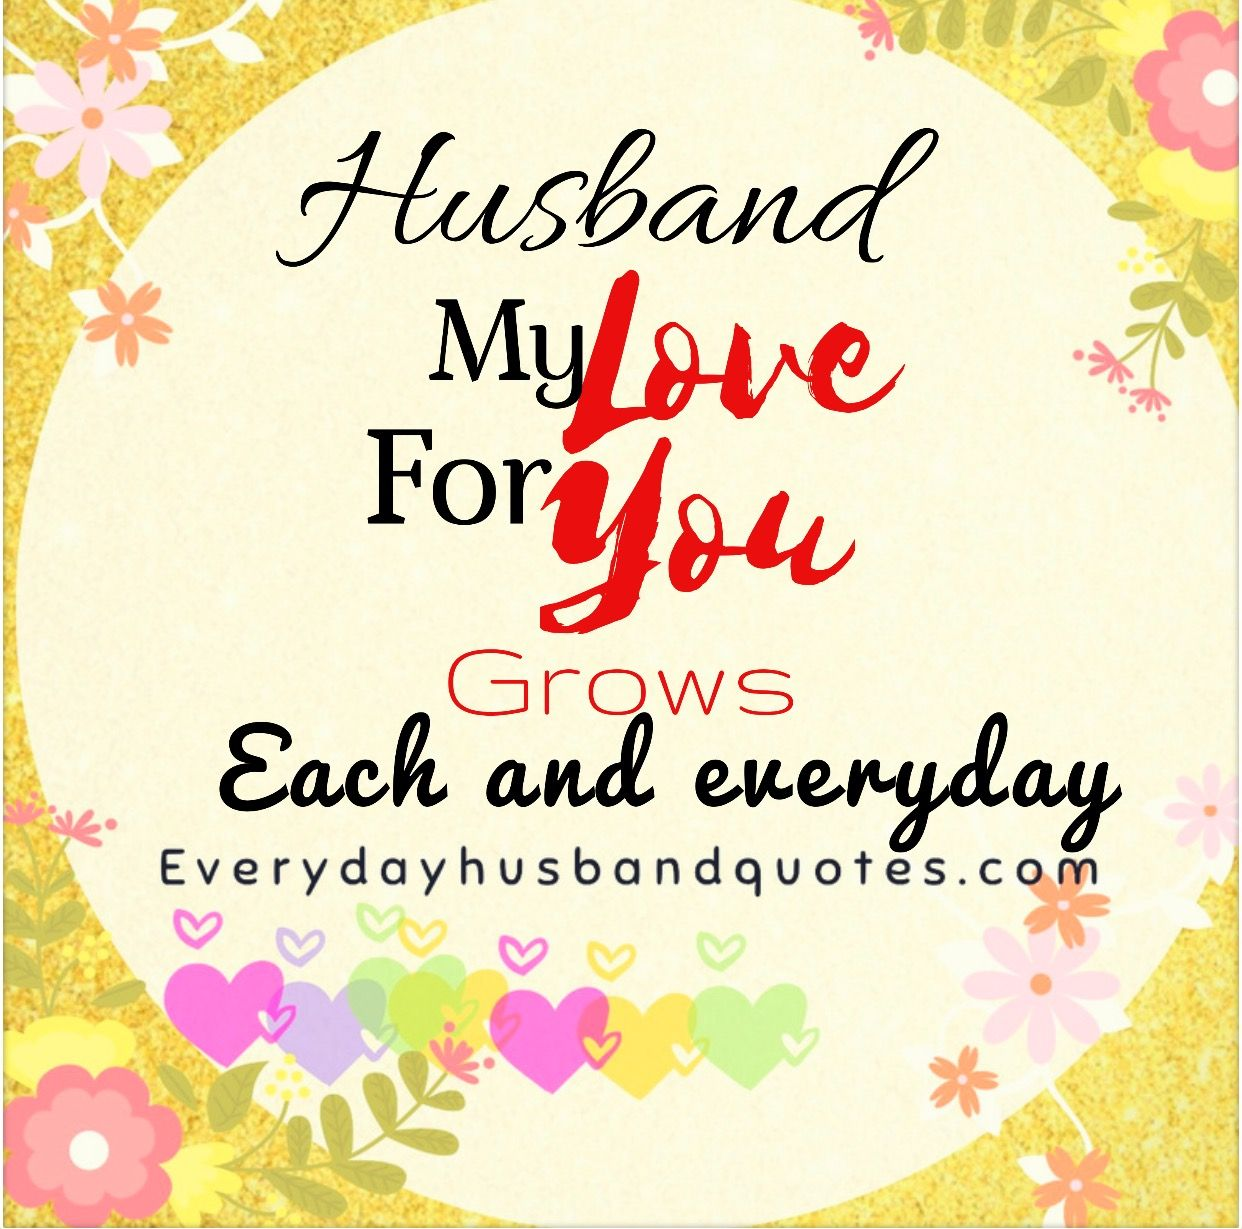 Husband Quote: Husband my love for you grows each and everyday